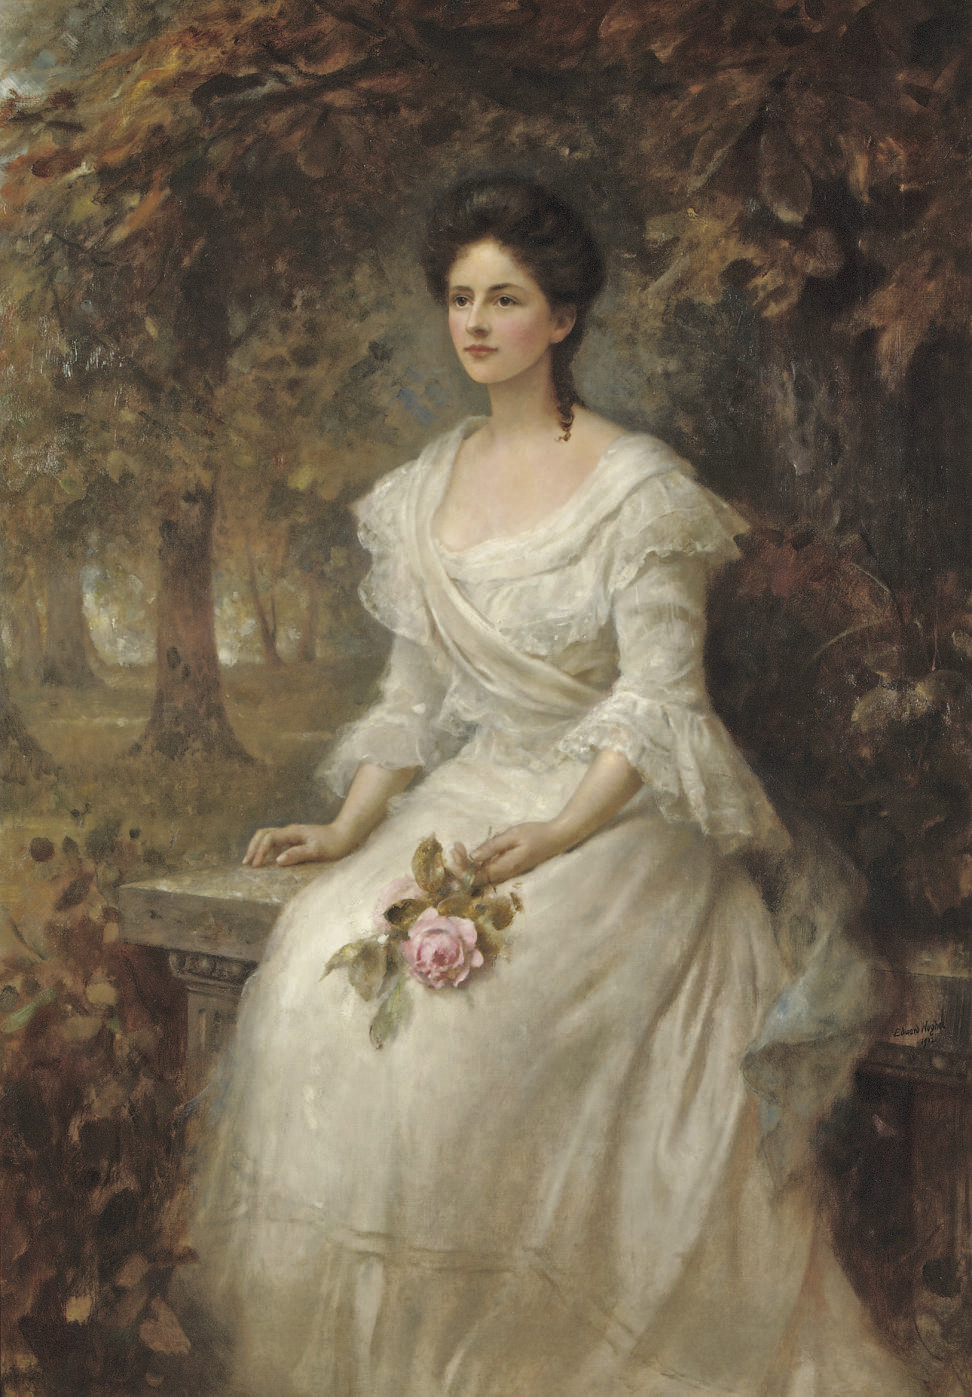 Portrait of a lady holding a pink rose